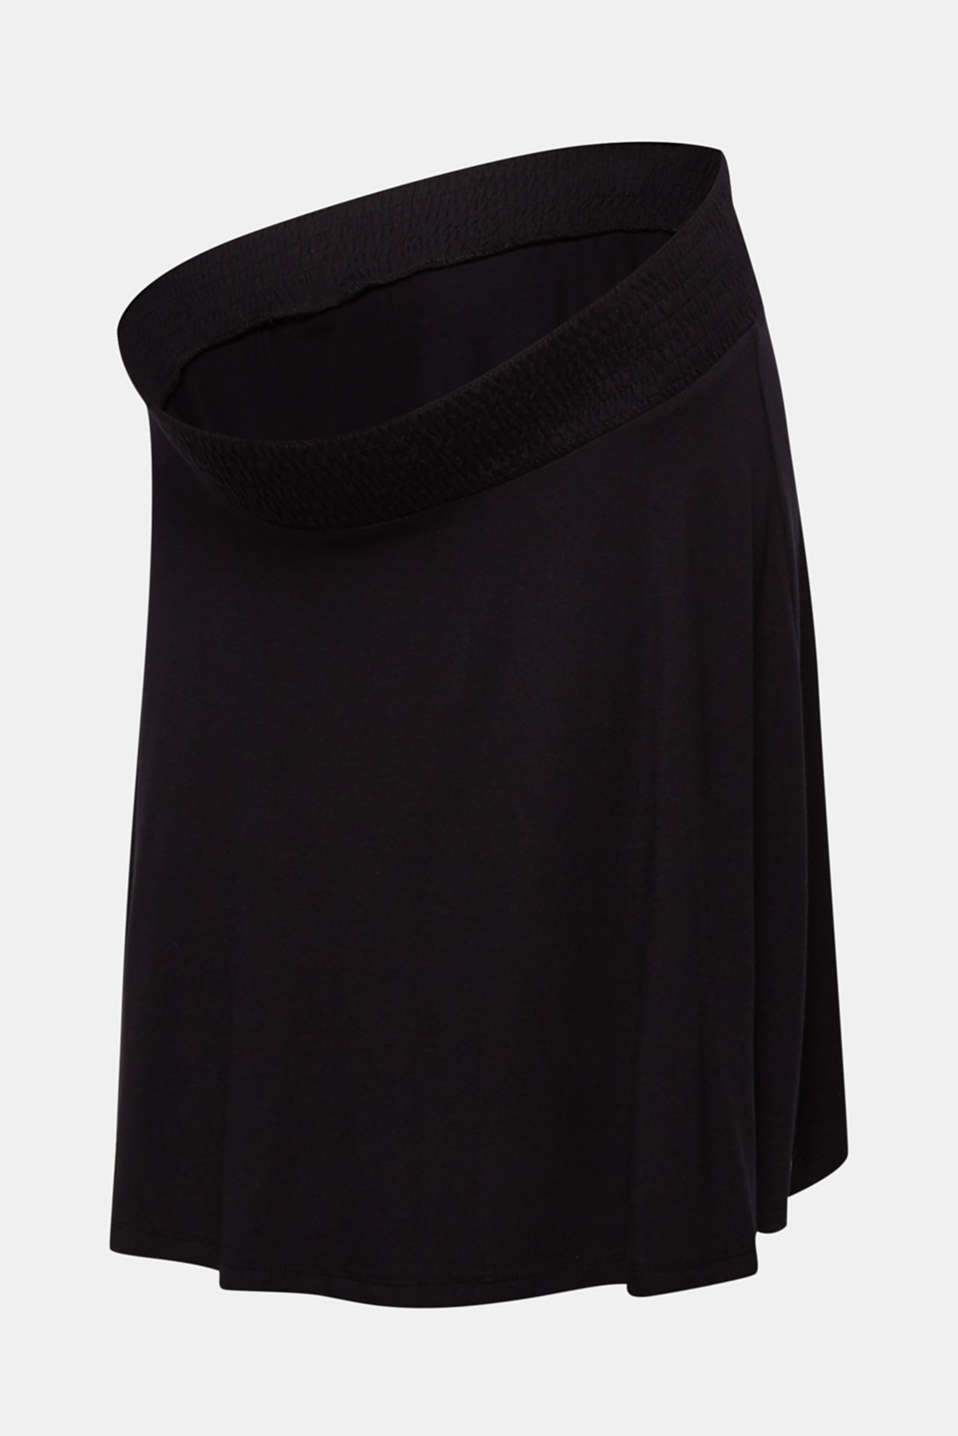 Stretch jersey skirt with a wide elasticated waistband, LCBLACK, detail image number 6